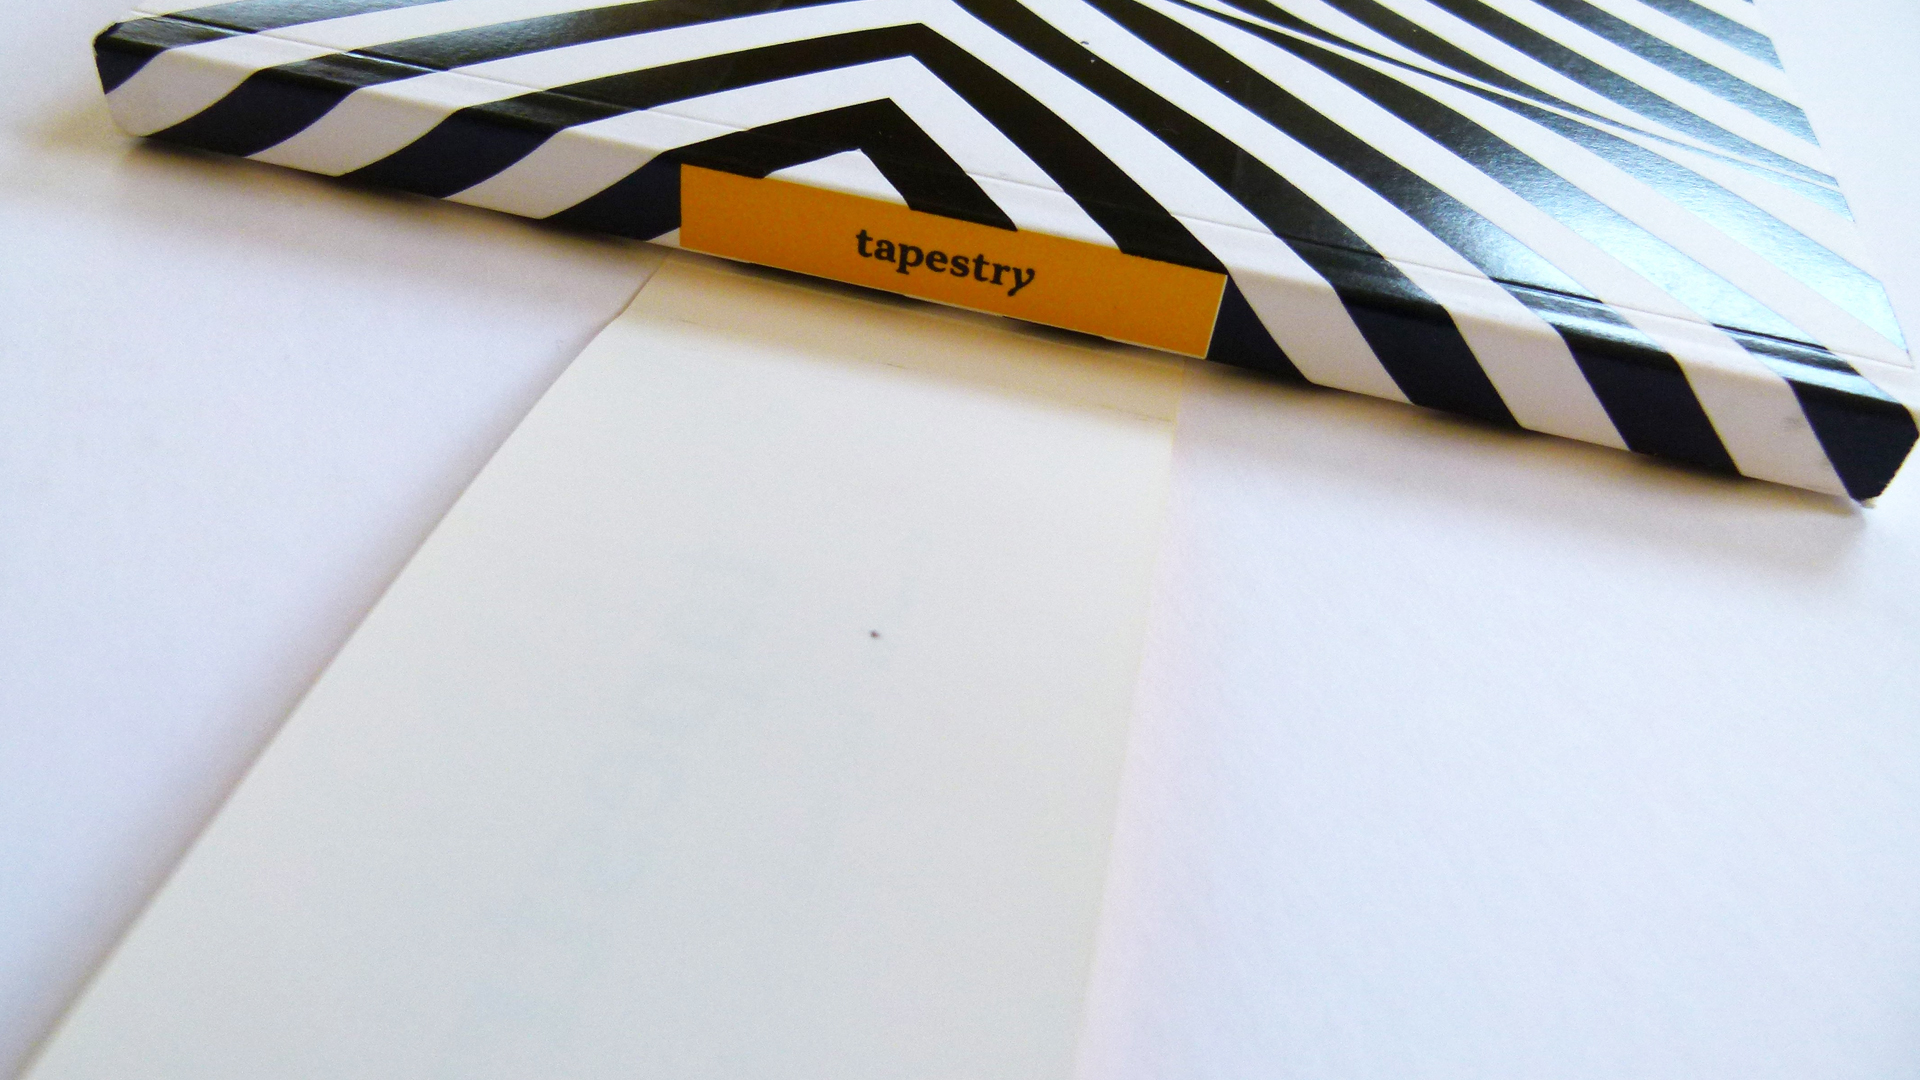 Tapestry Designer Notebook - PaperSpecs